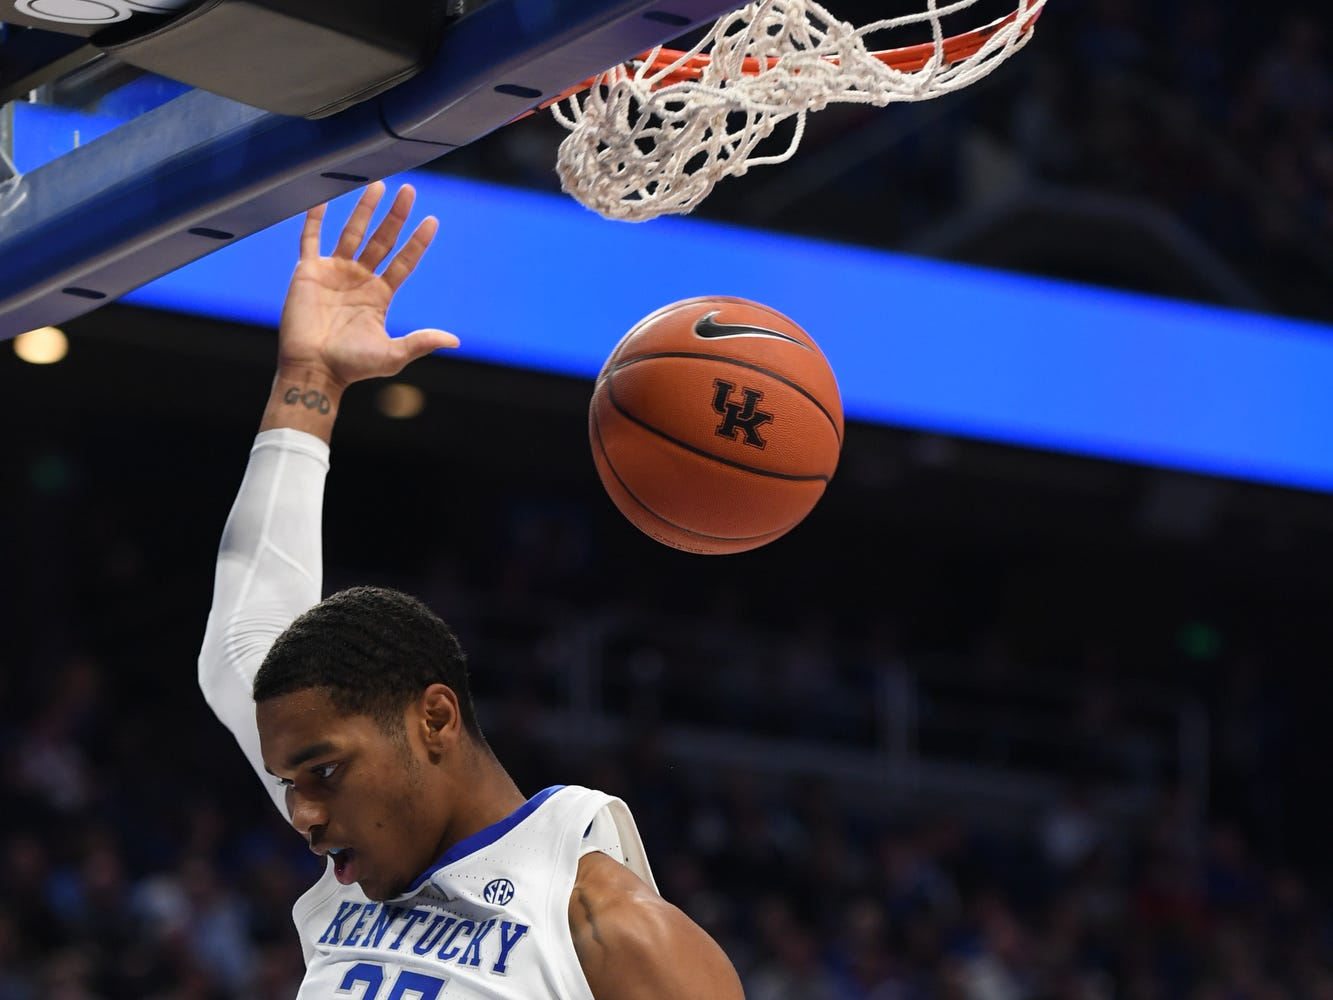 UK forward PJ Washington dunks during the University of Kentucky basketball game against Transylvania at Rupp Arena in Lexington on Friday, Oct. 26, 2018.